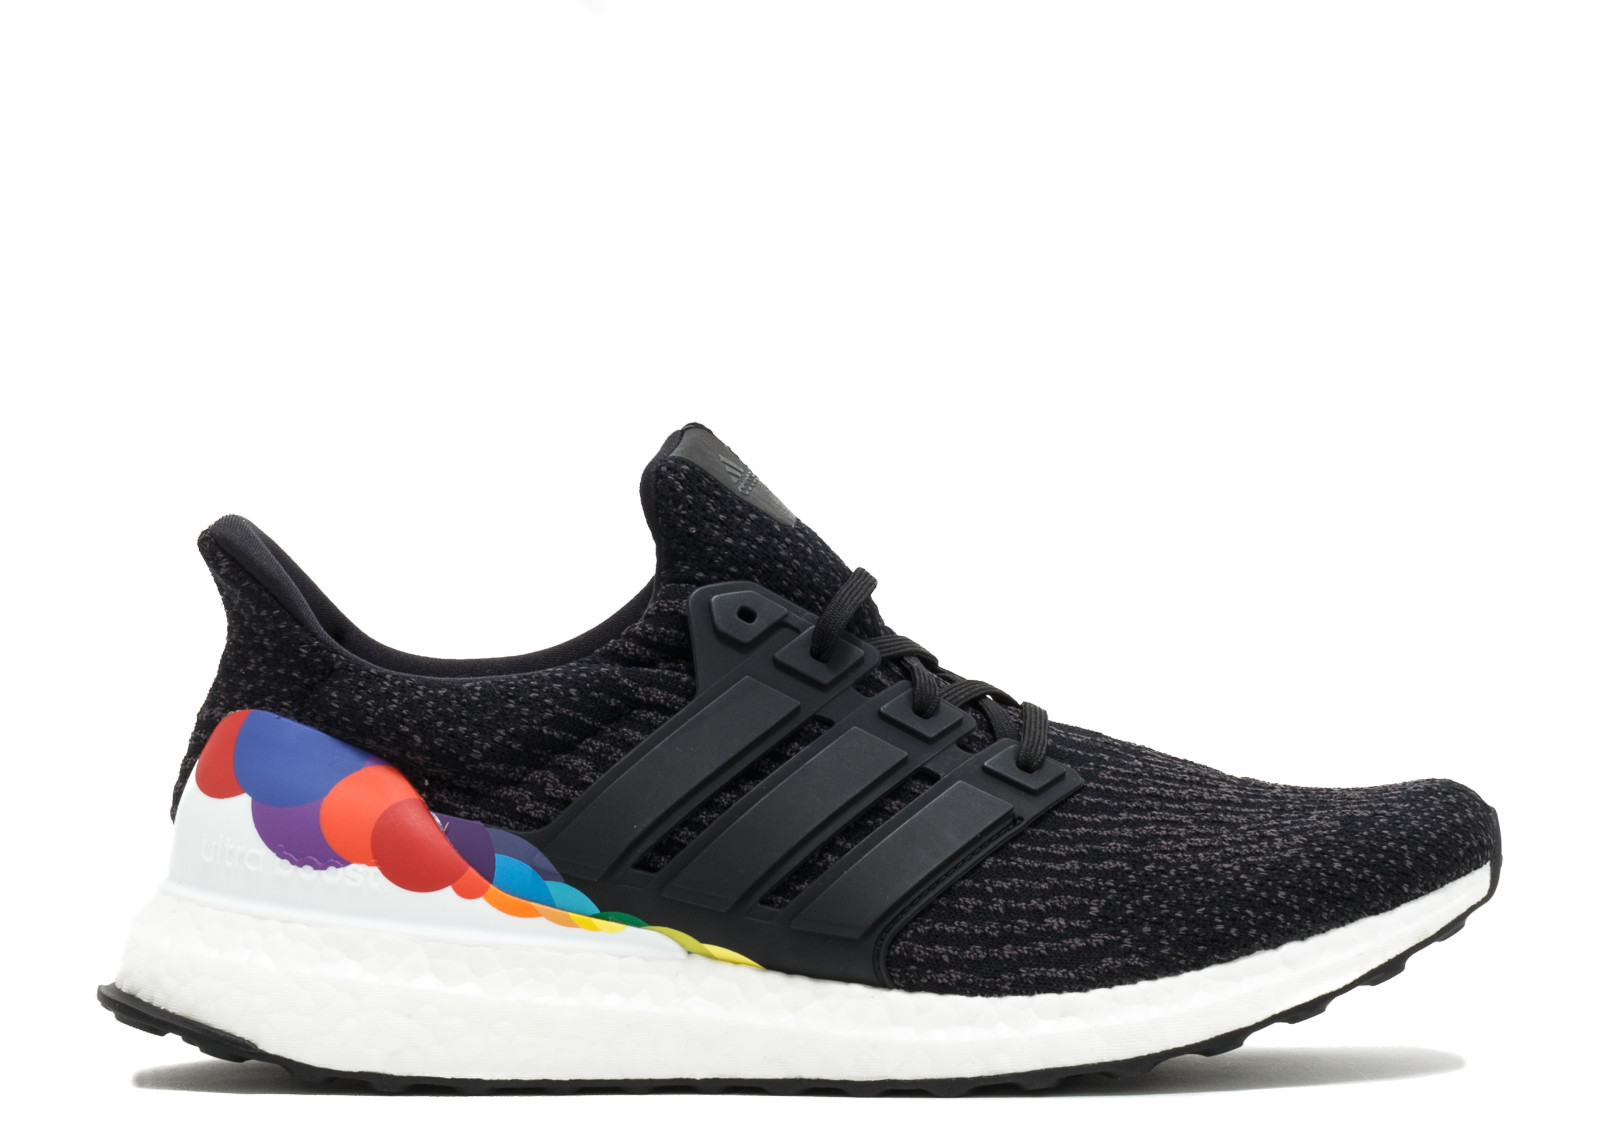 Details about Adidas Originals Ultra Boost 3.0 'Pride' Cp9632 Size 9.5